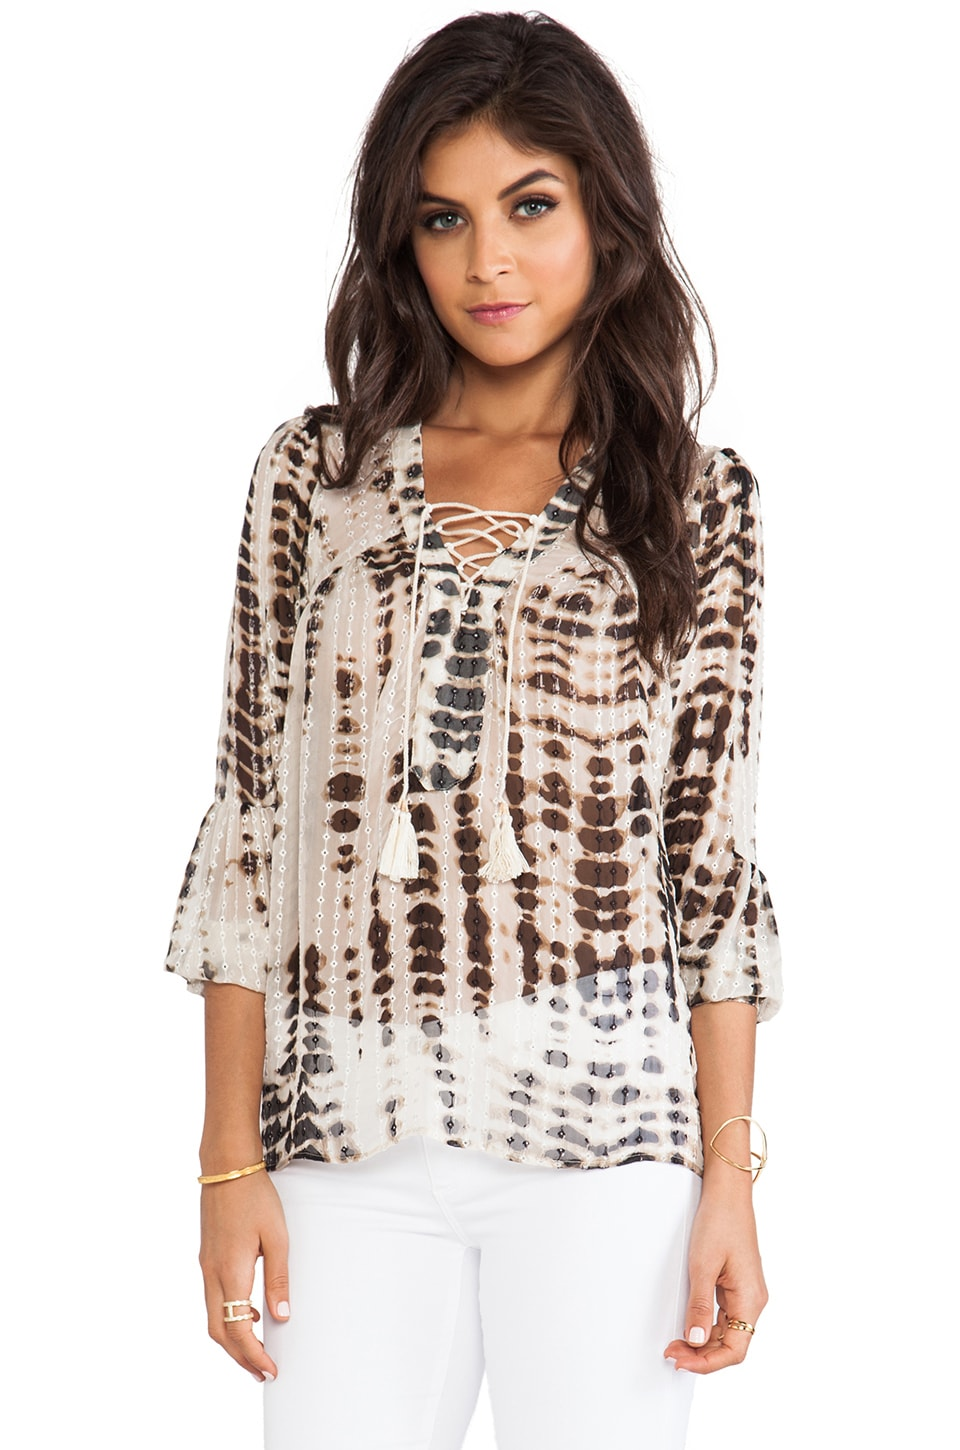 Twelfth Street By Cynthia Vincent Lace Up Blouse in Taupe